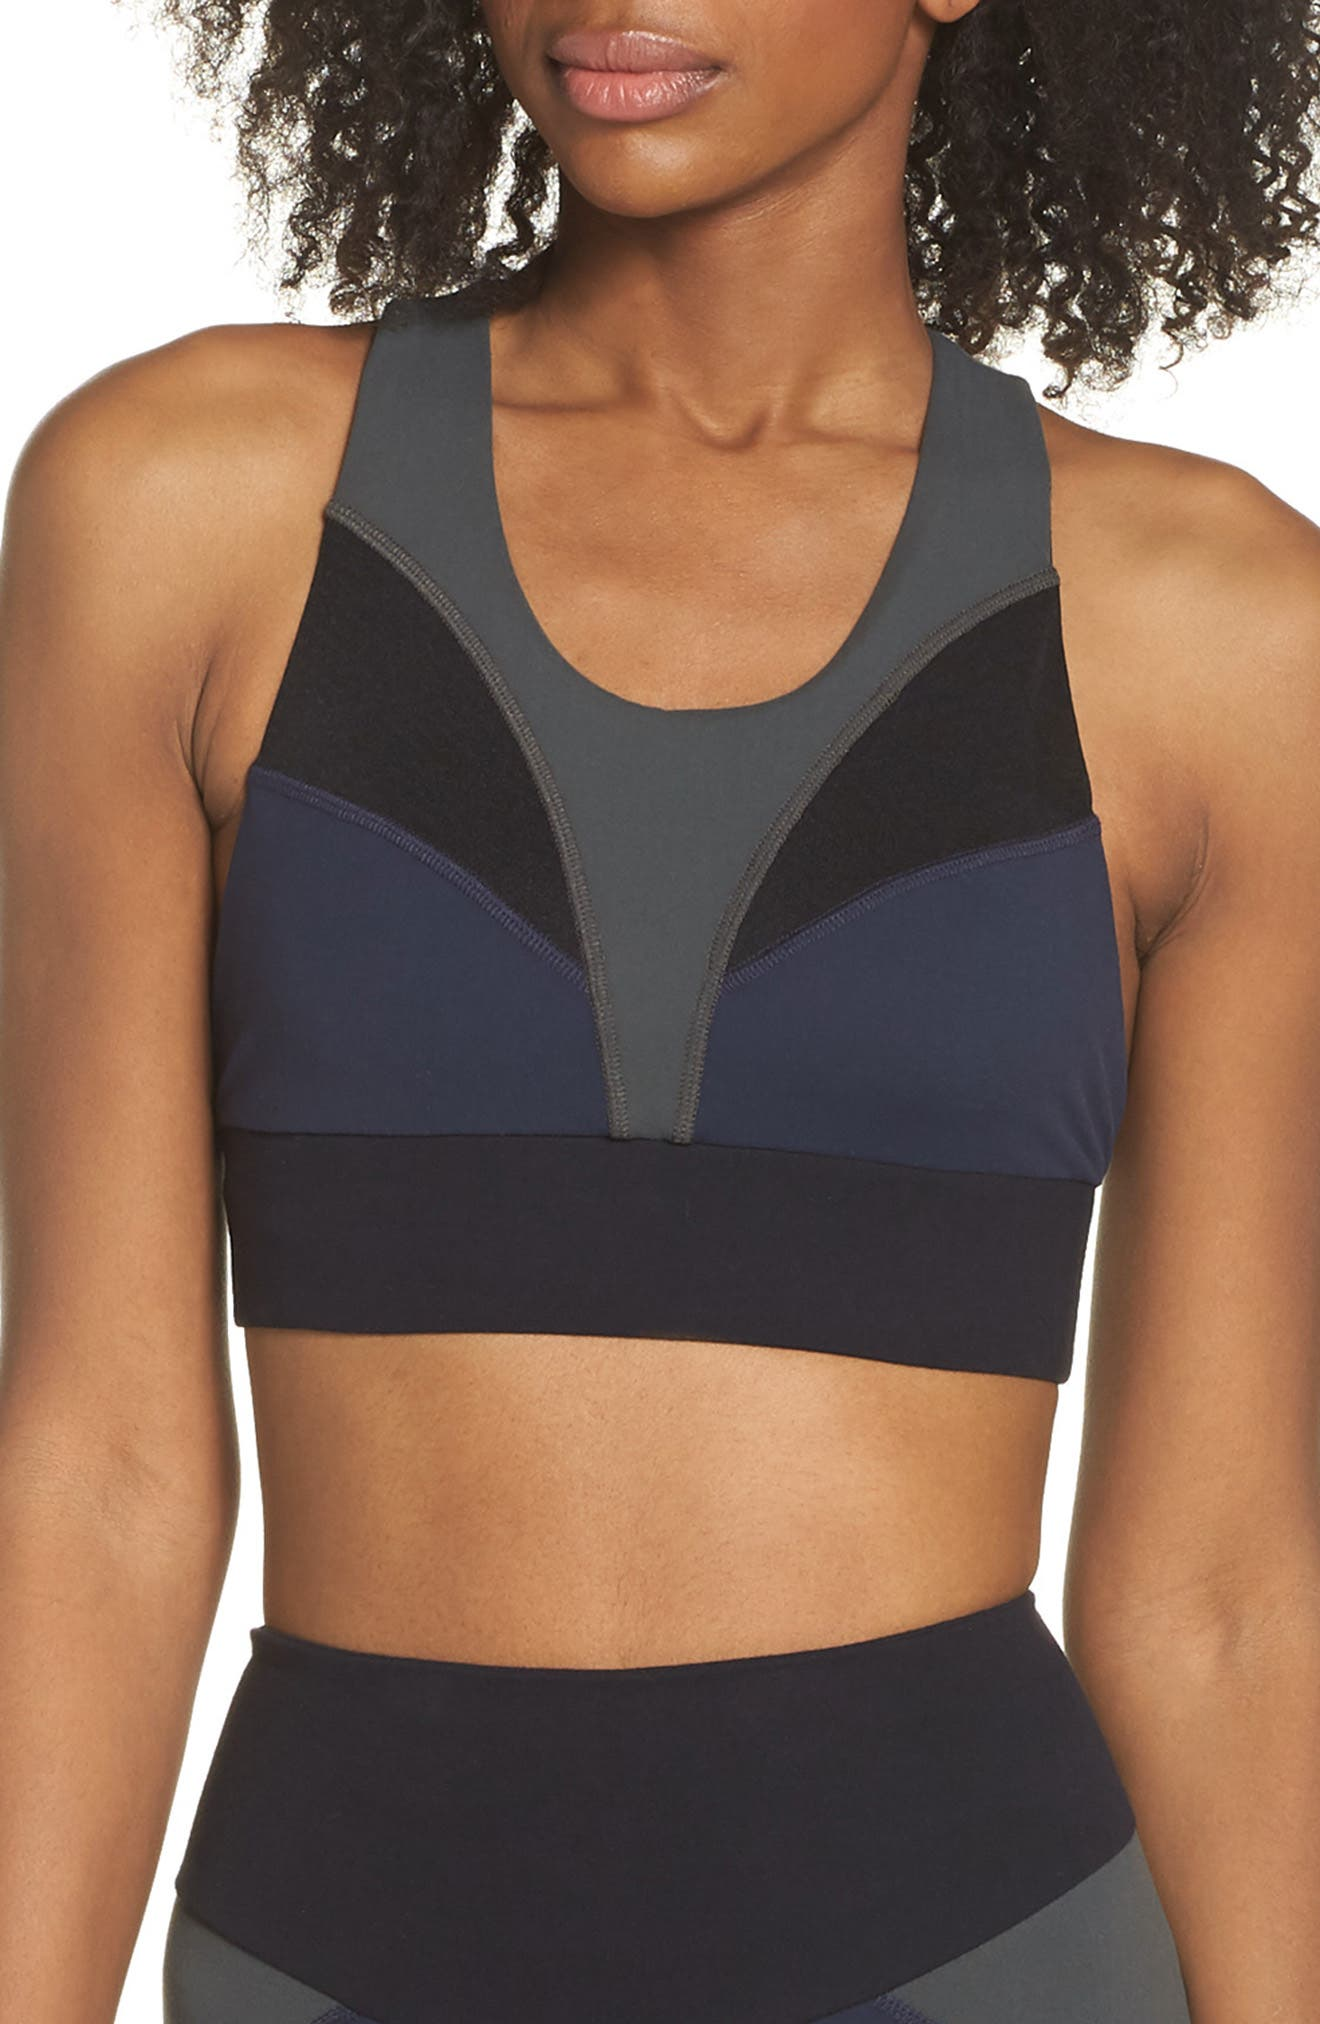 BoomBoom Athletica Brushed Tricolor Bra,                         Main,                         color, Navy/ Black/ Green